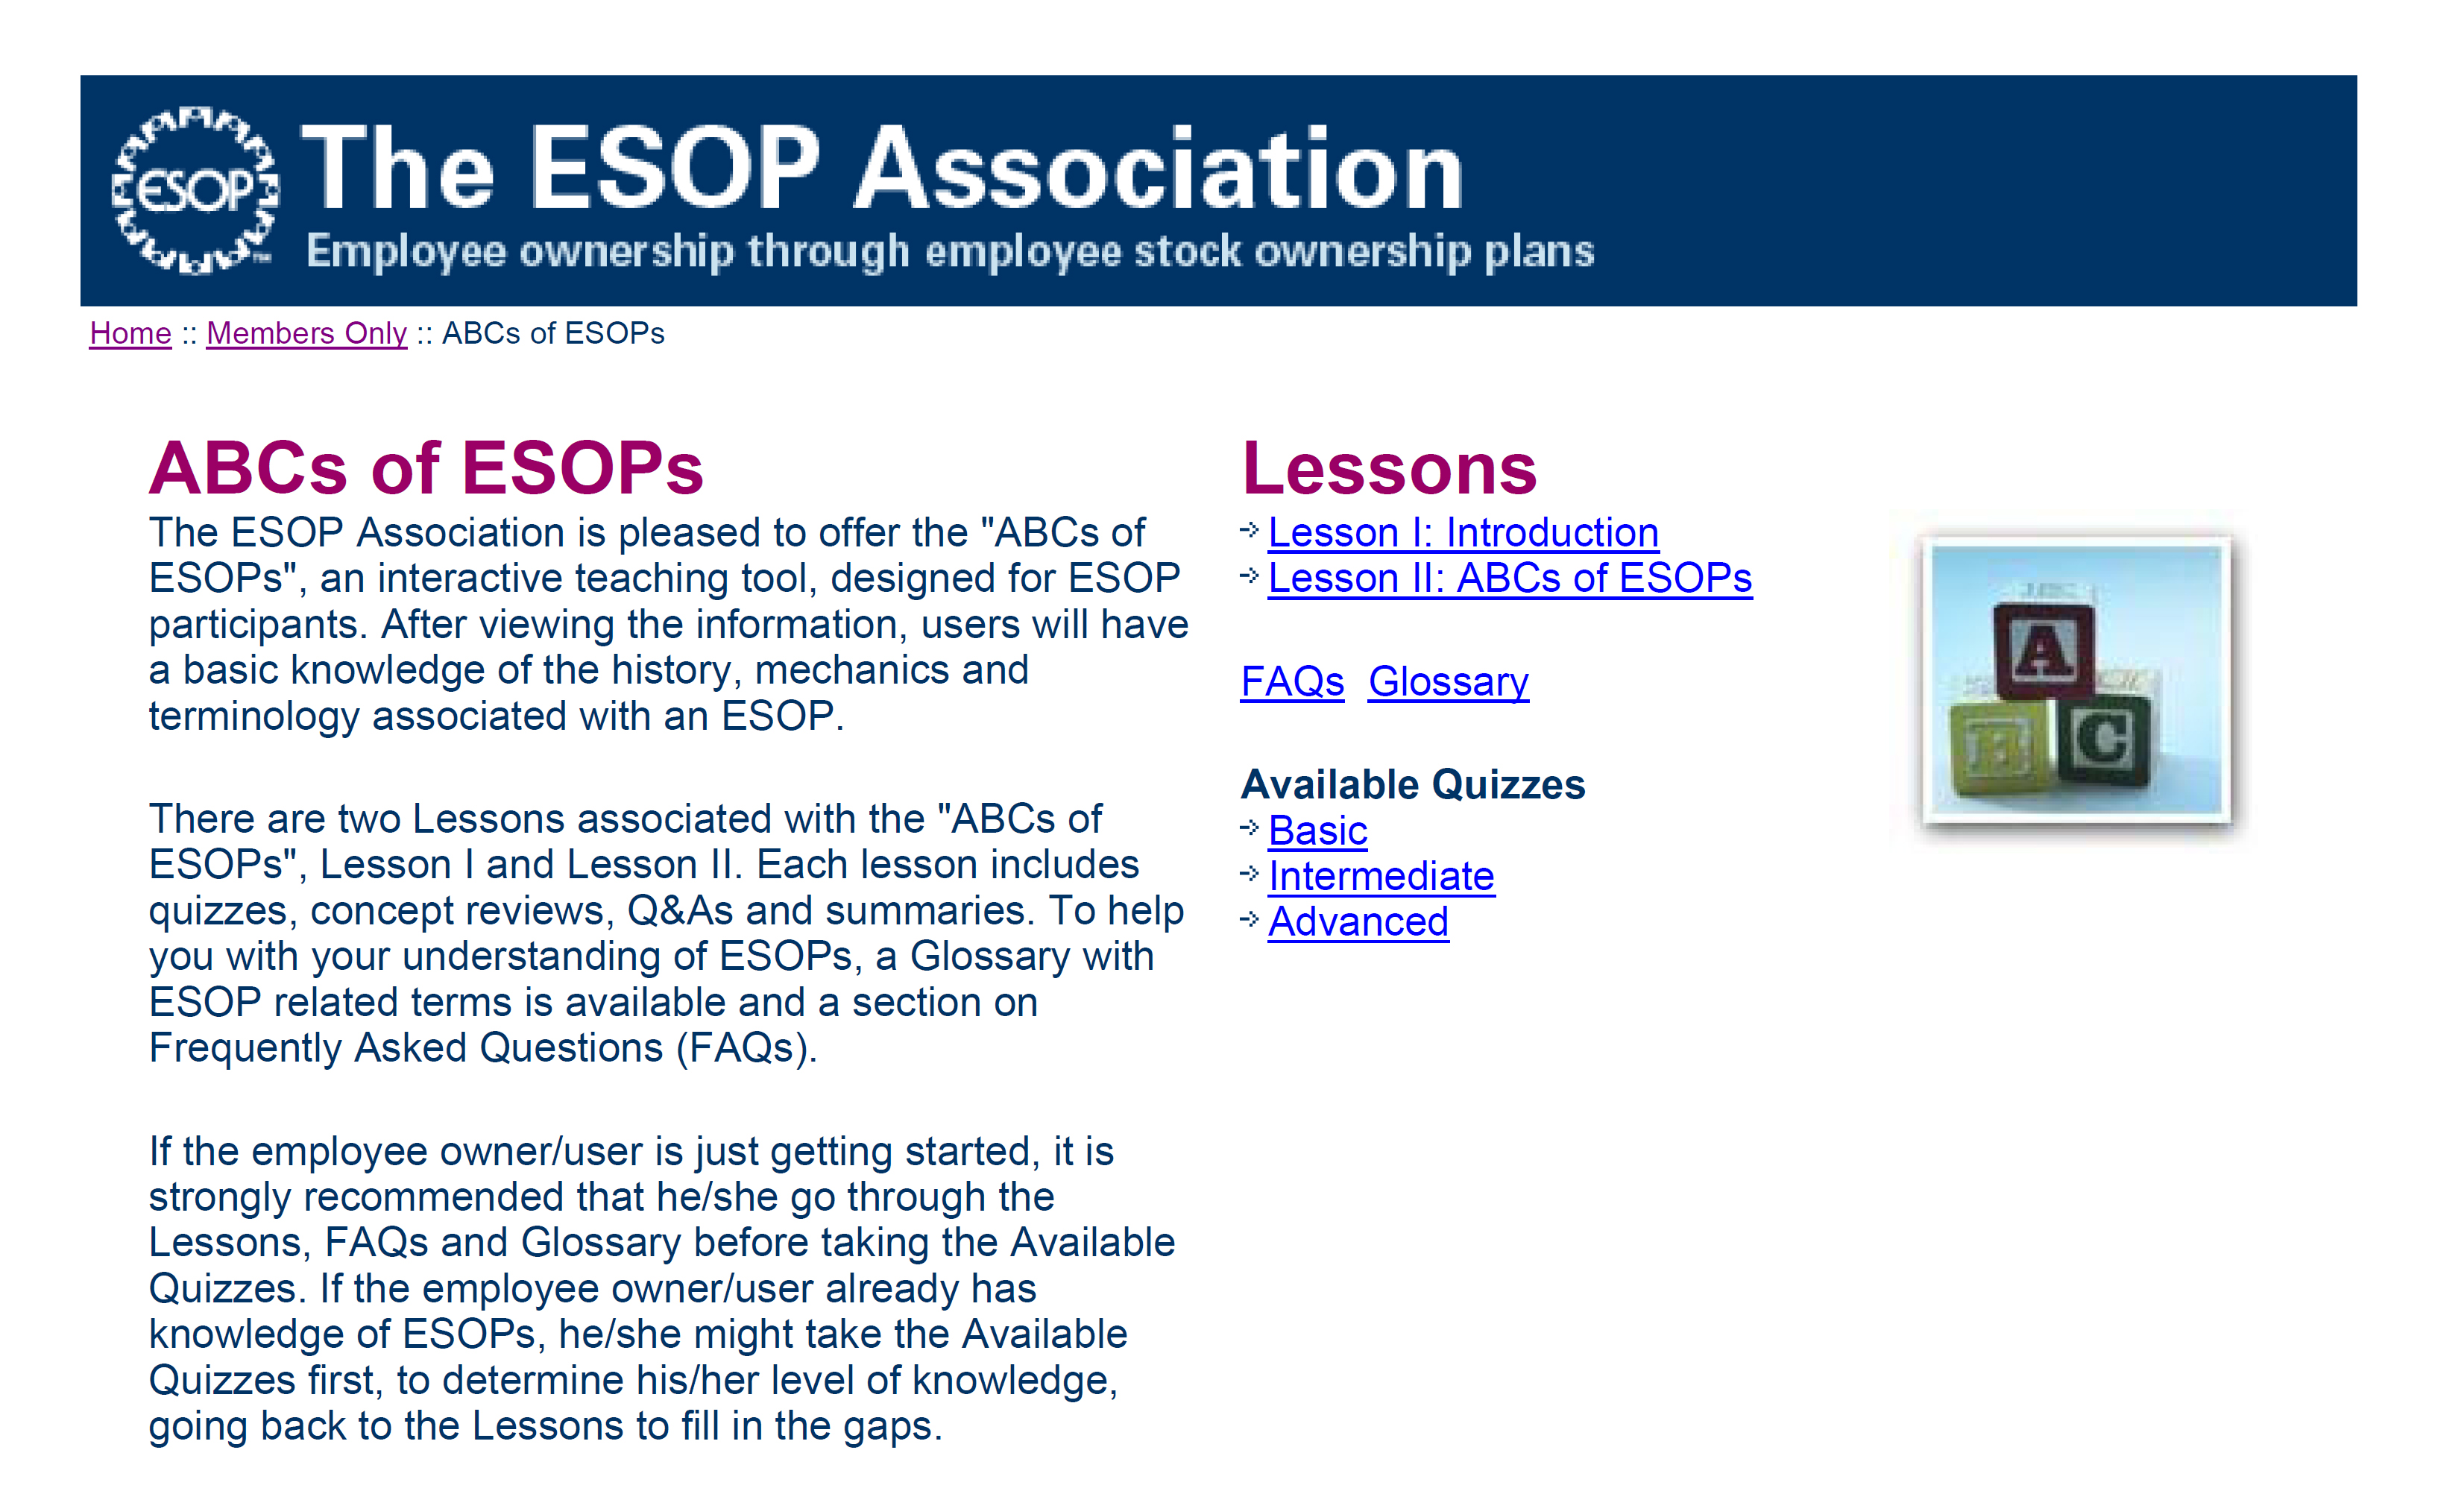 esop in india Amount received from the employer even after cessation of employment is taxable.